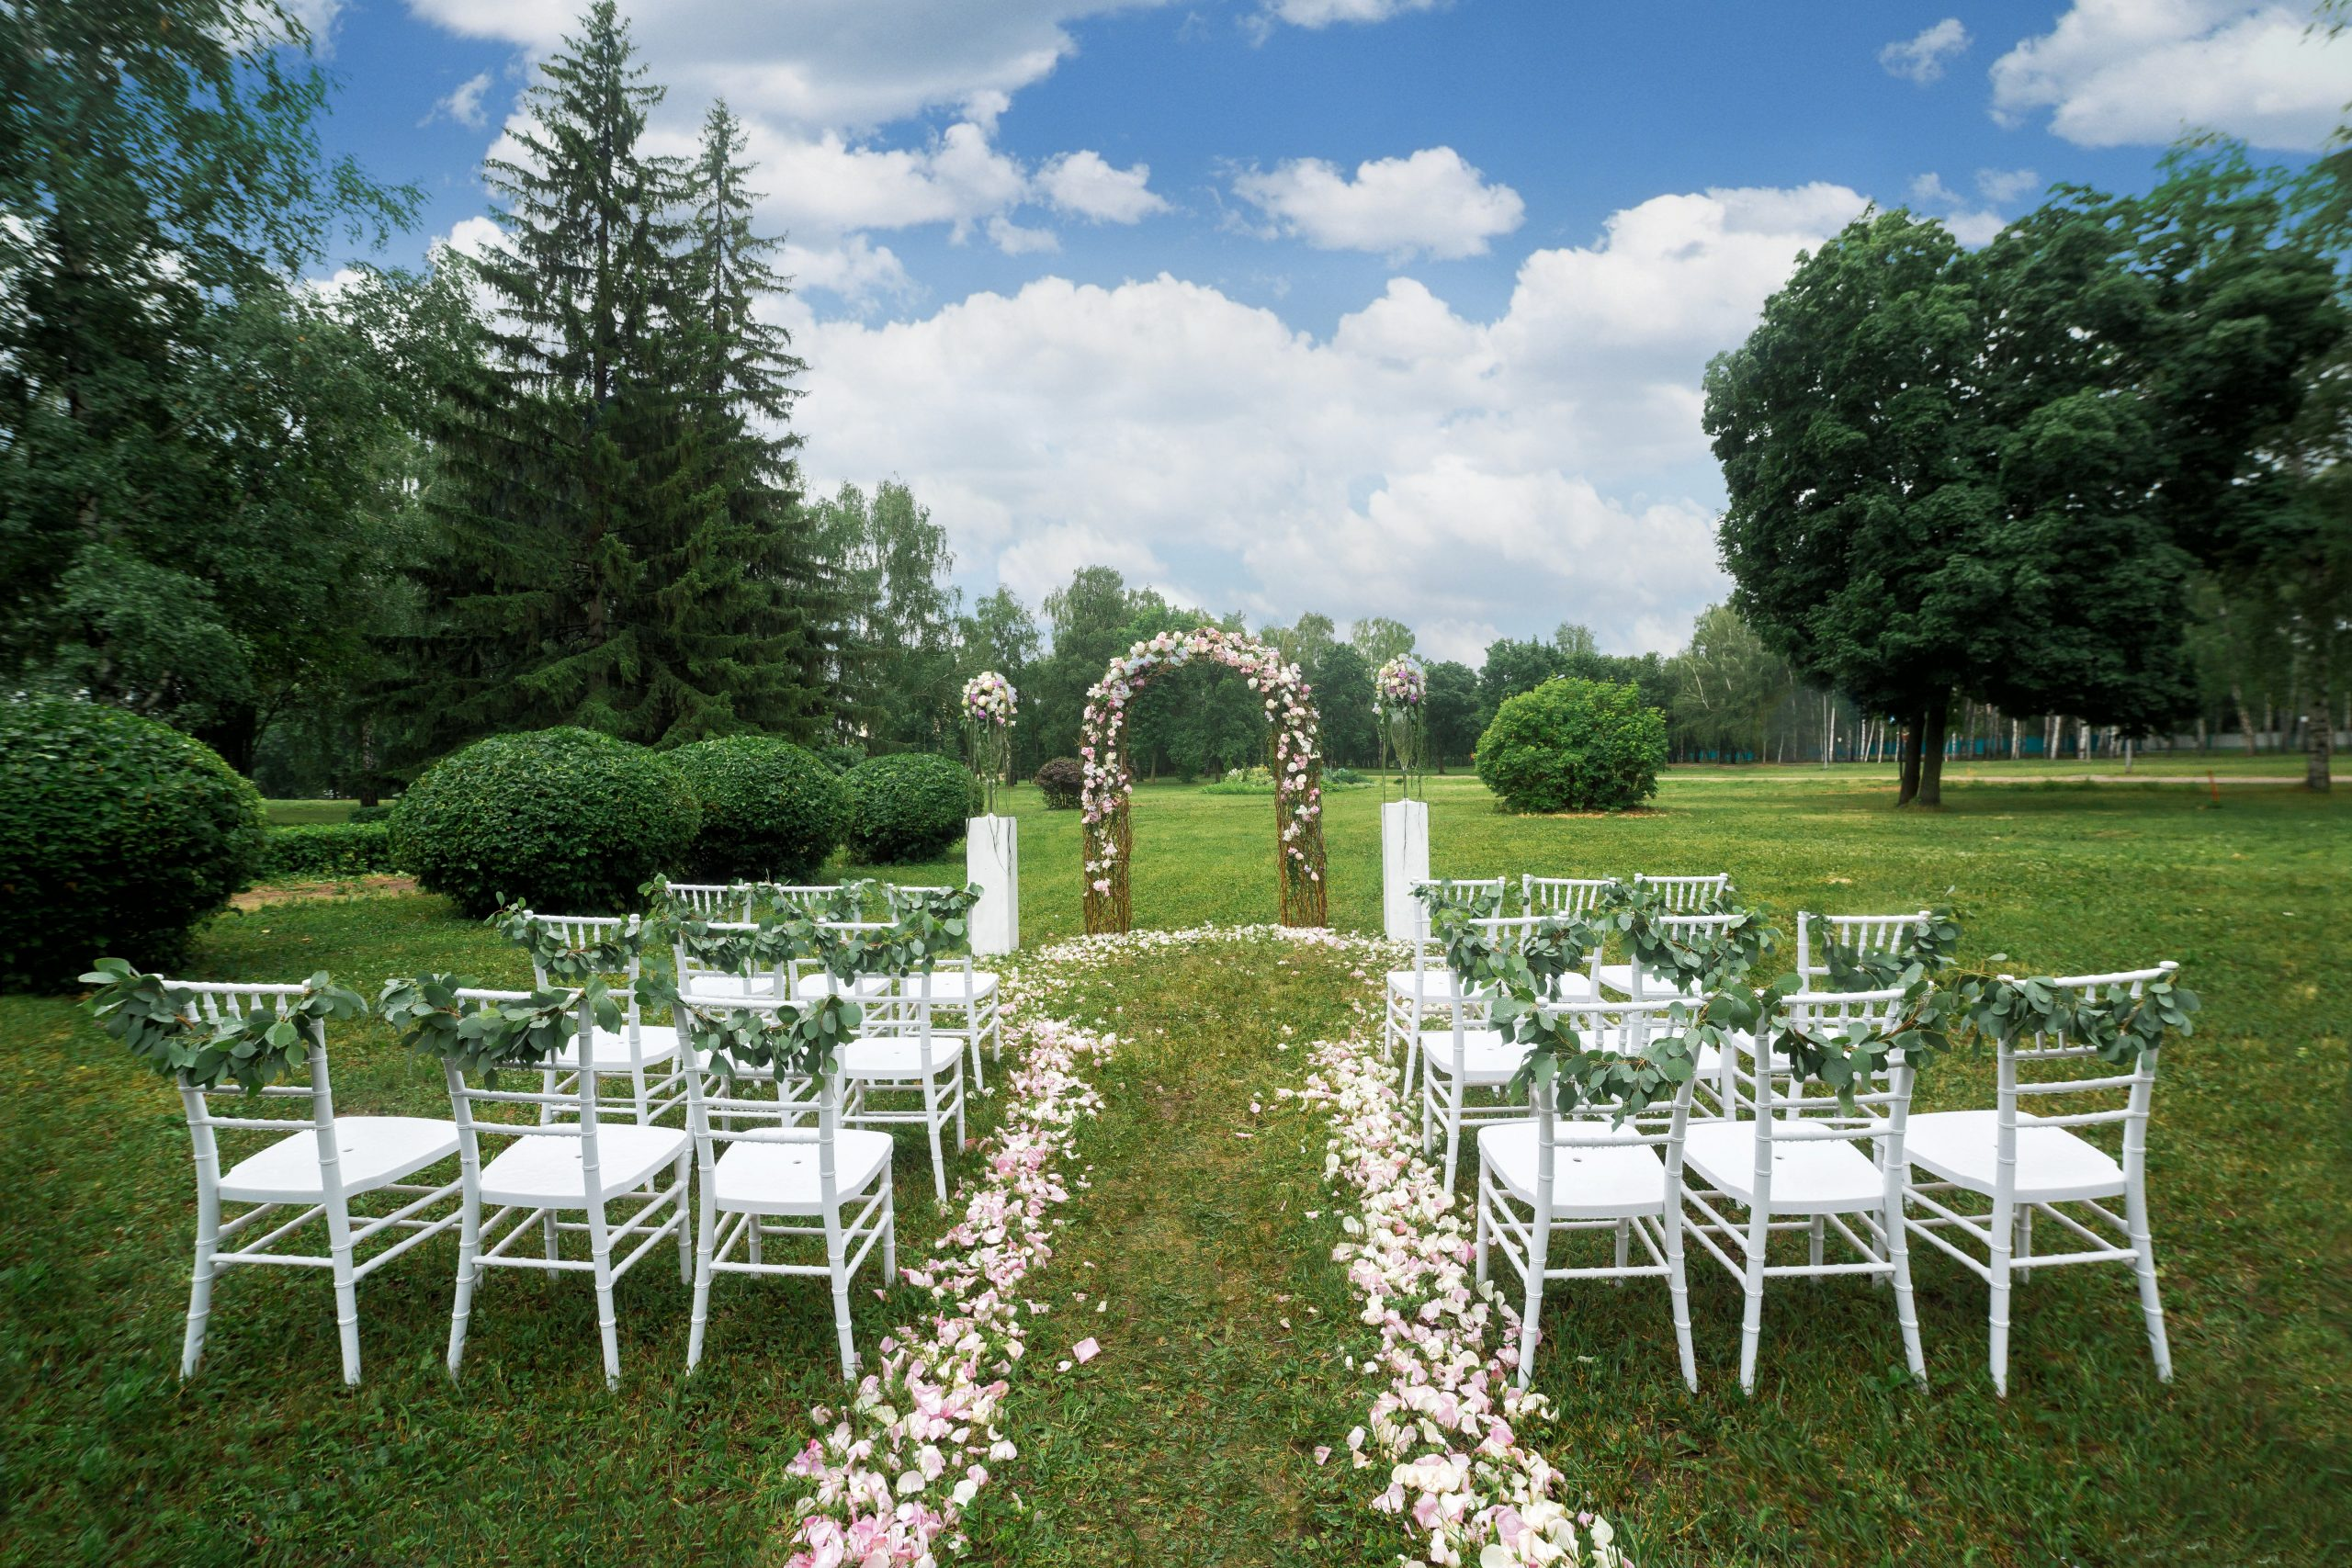 How Portable Restrooms Can Save Your Outdoor Wedding